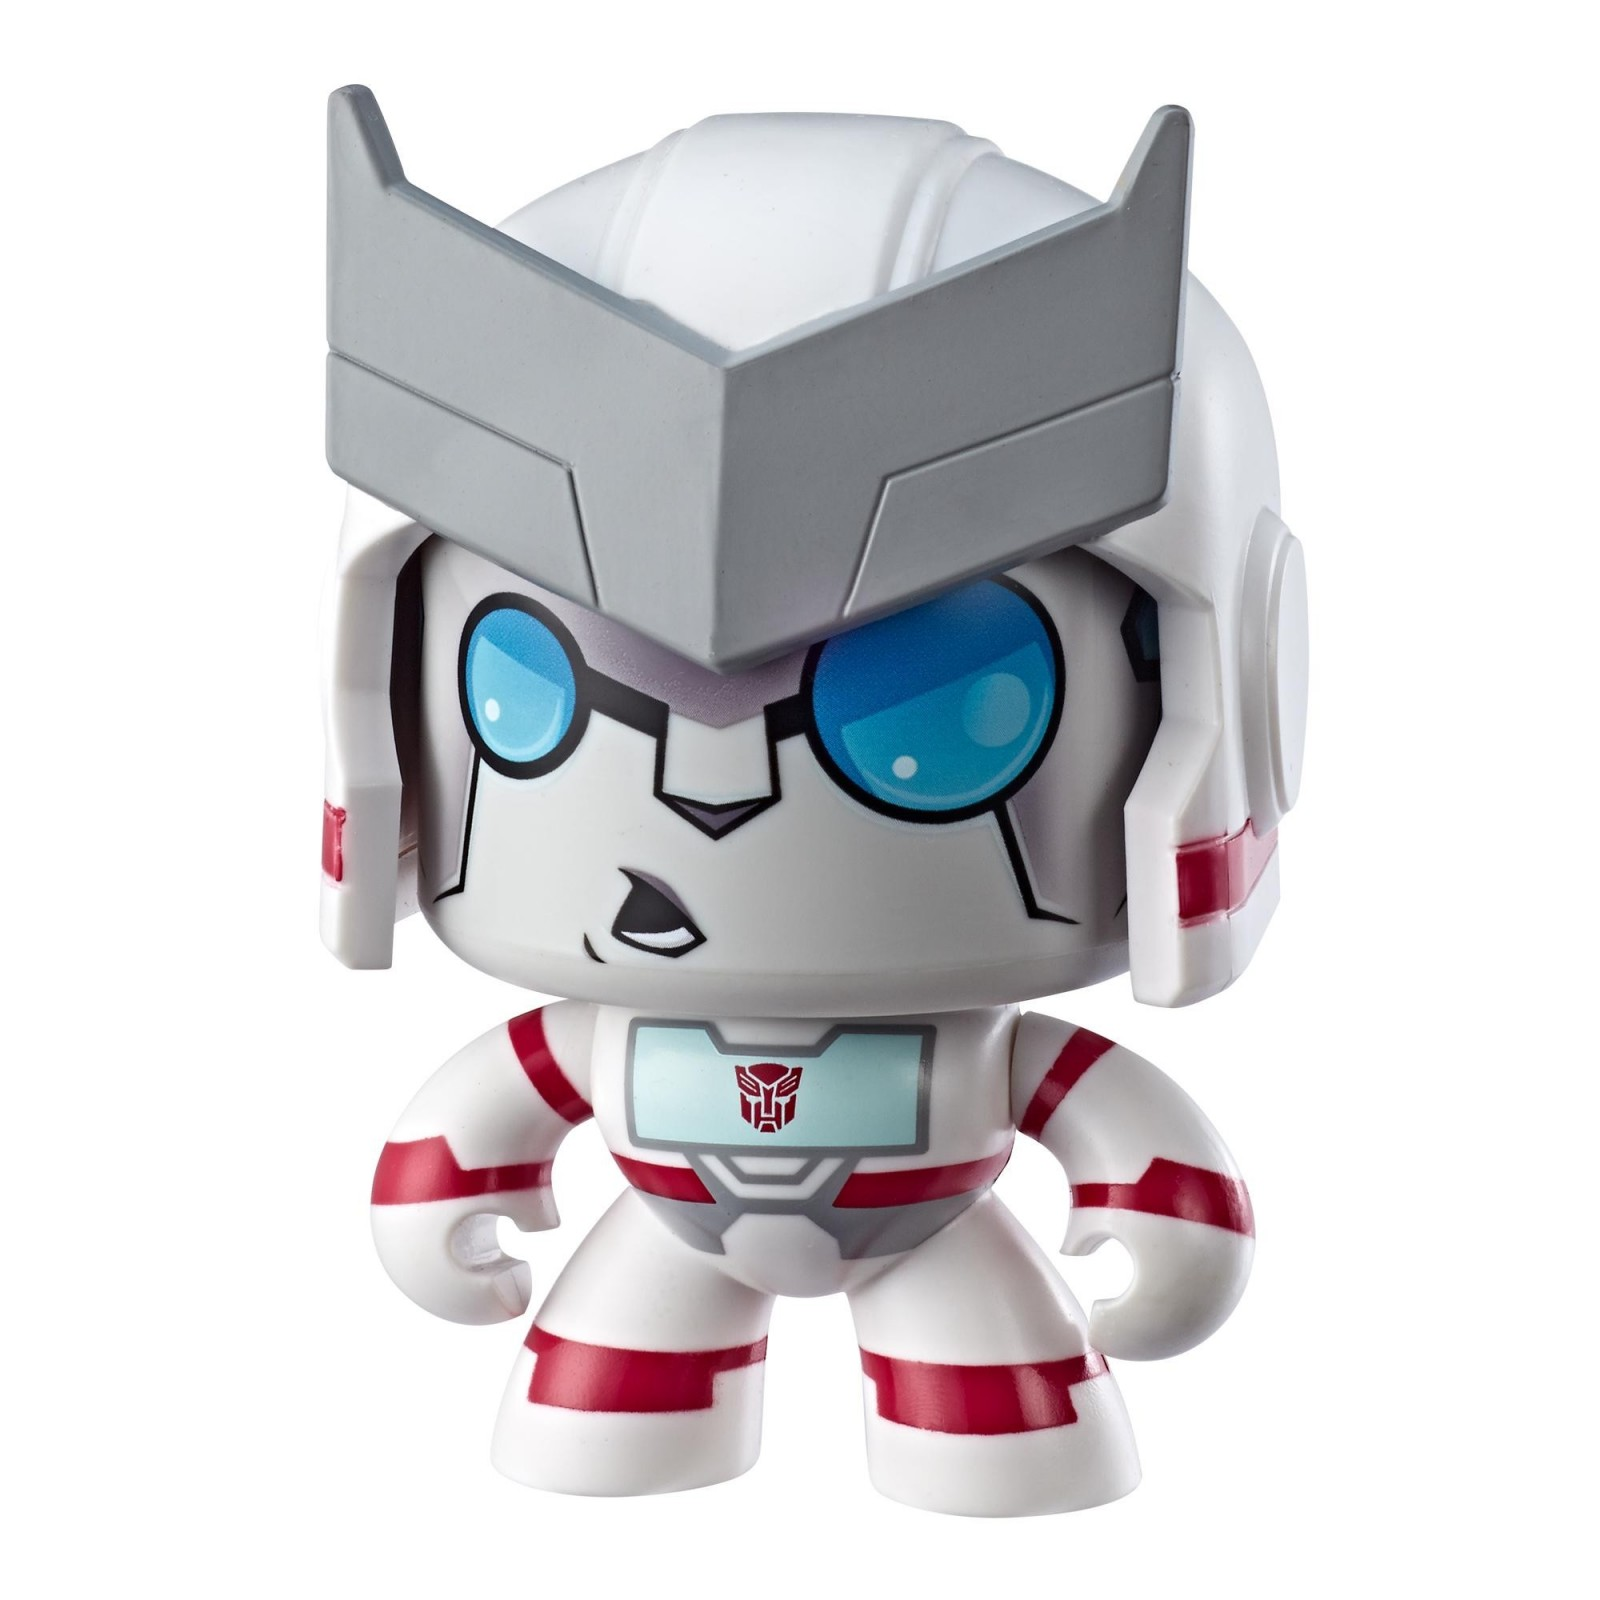 Transformers News: 2019 Mighty Muggs Revealed with Soundwave, Ratchet, Windblade and More